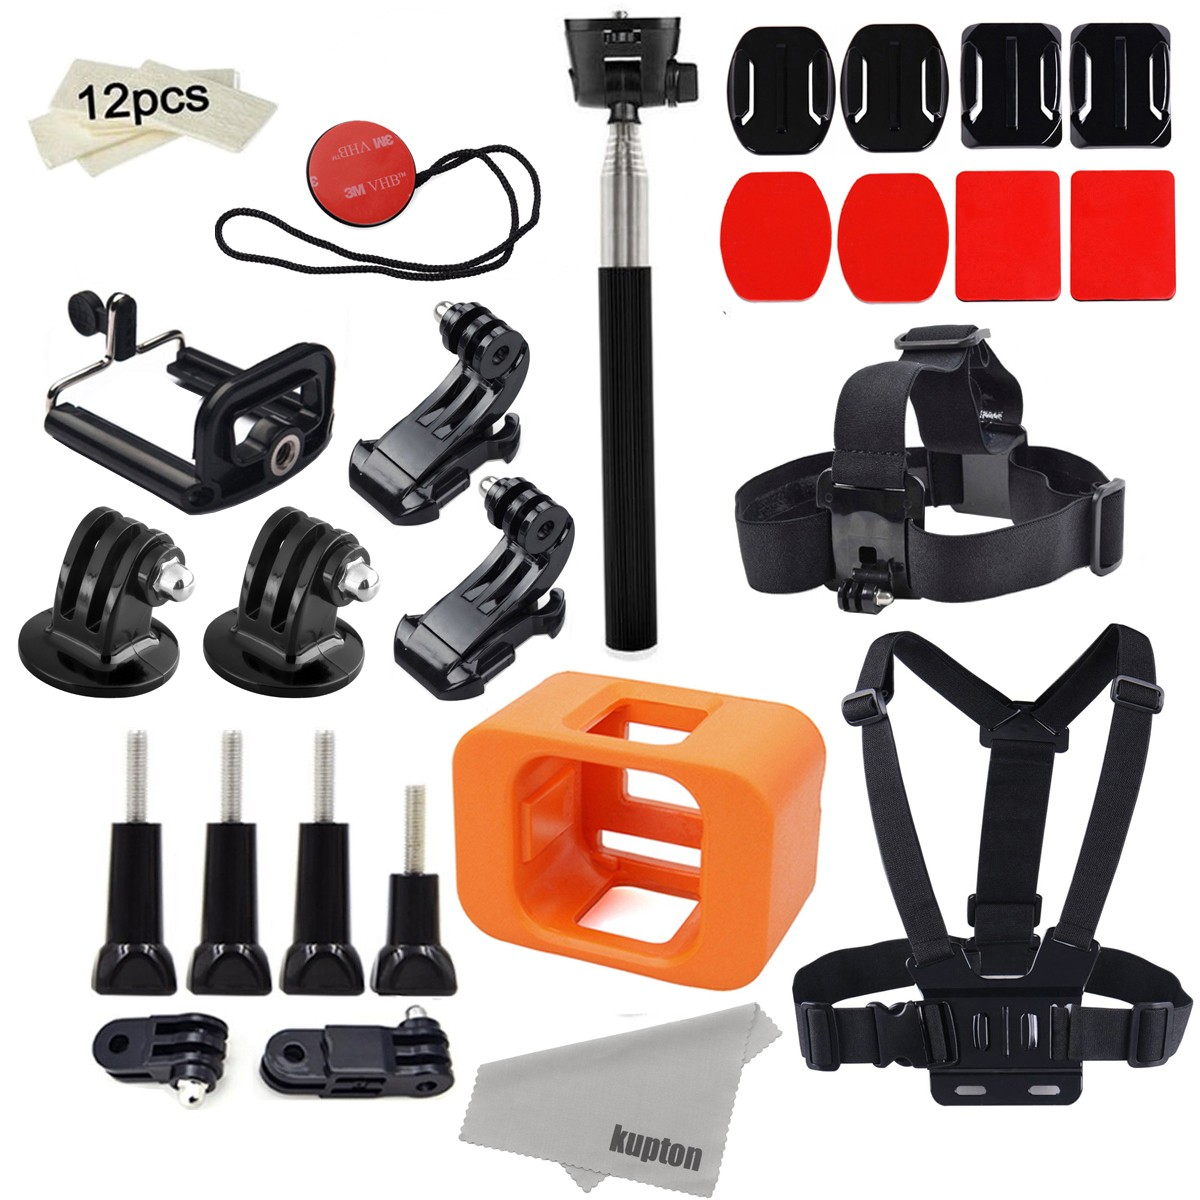 Kupton Accessories for GoPro Hero 4 Session Mounts Bundle GoPro Camera Floaty Chest Harness Head Strap Monopod Stick Starter Kit